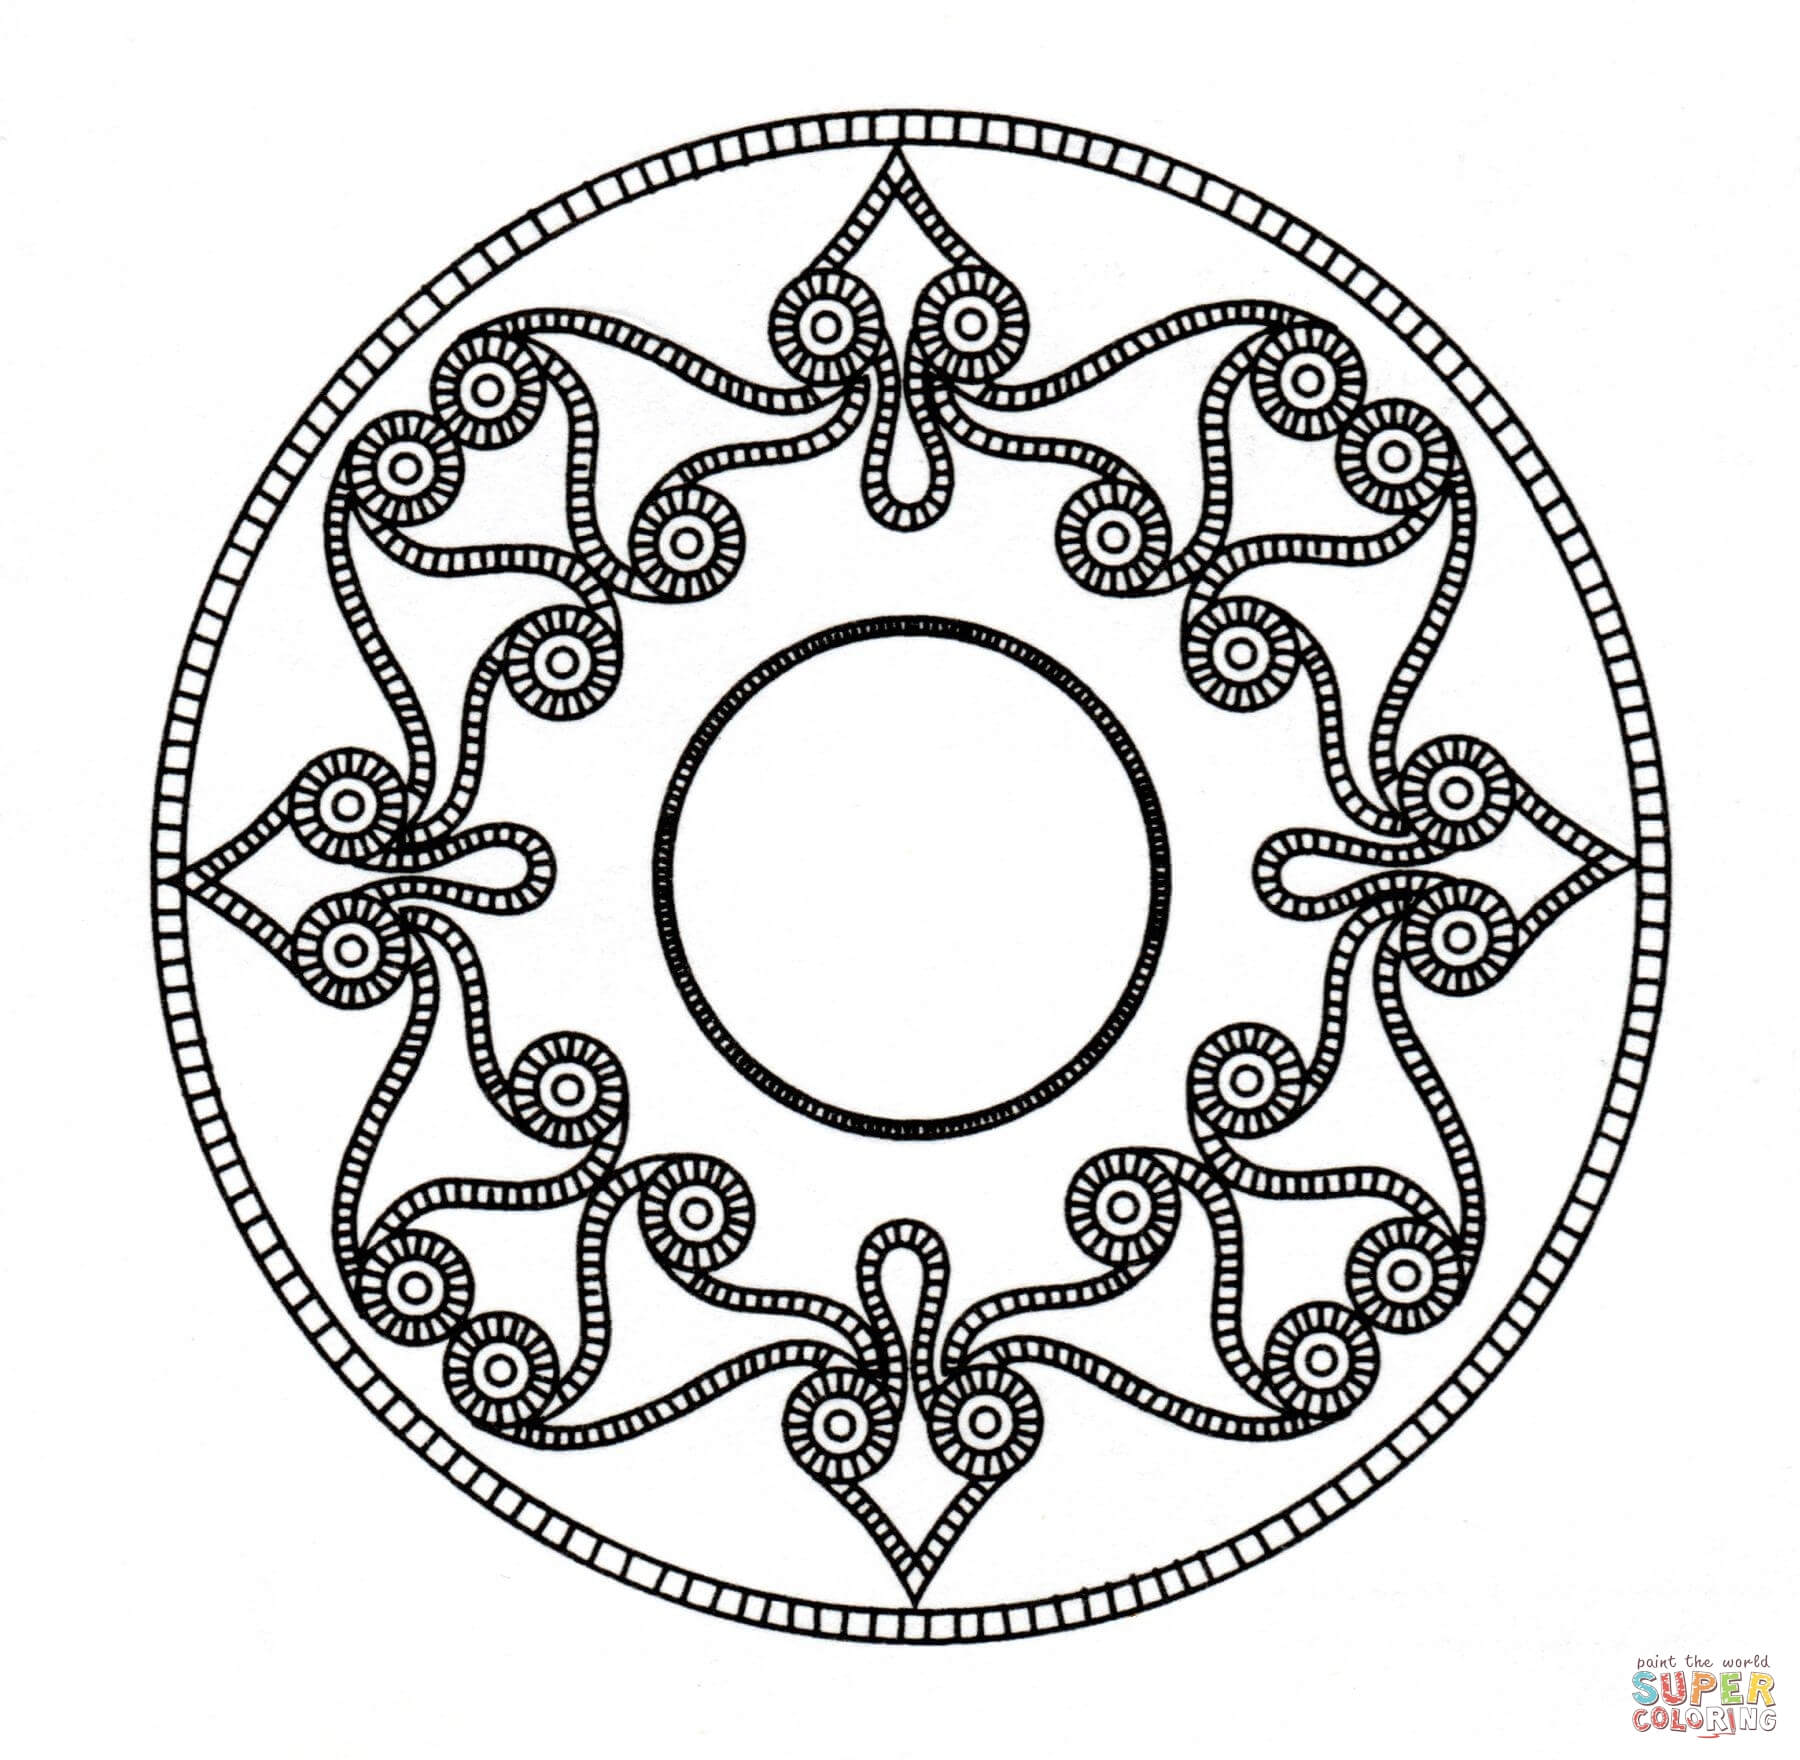 image library stock Free coloring pages download. Celtic clipart mandala.